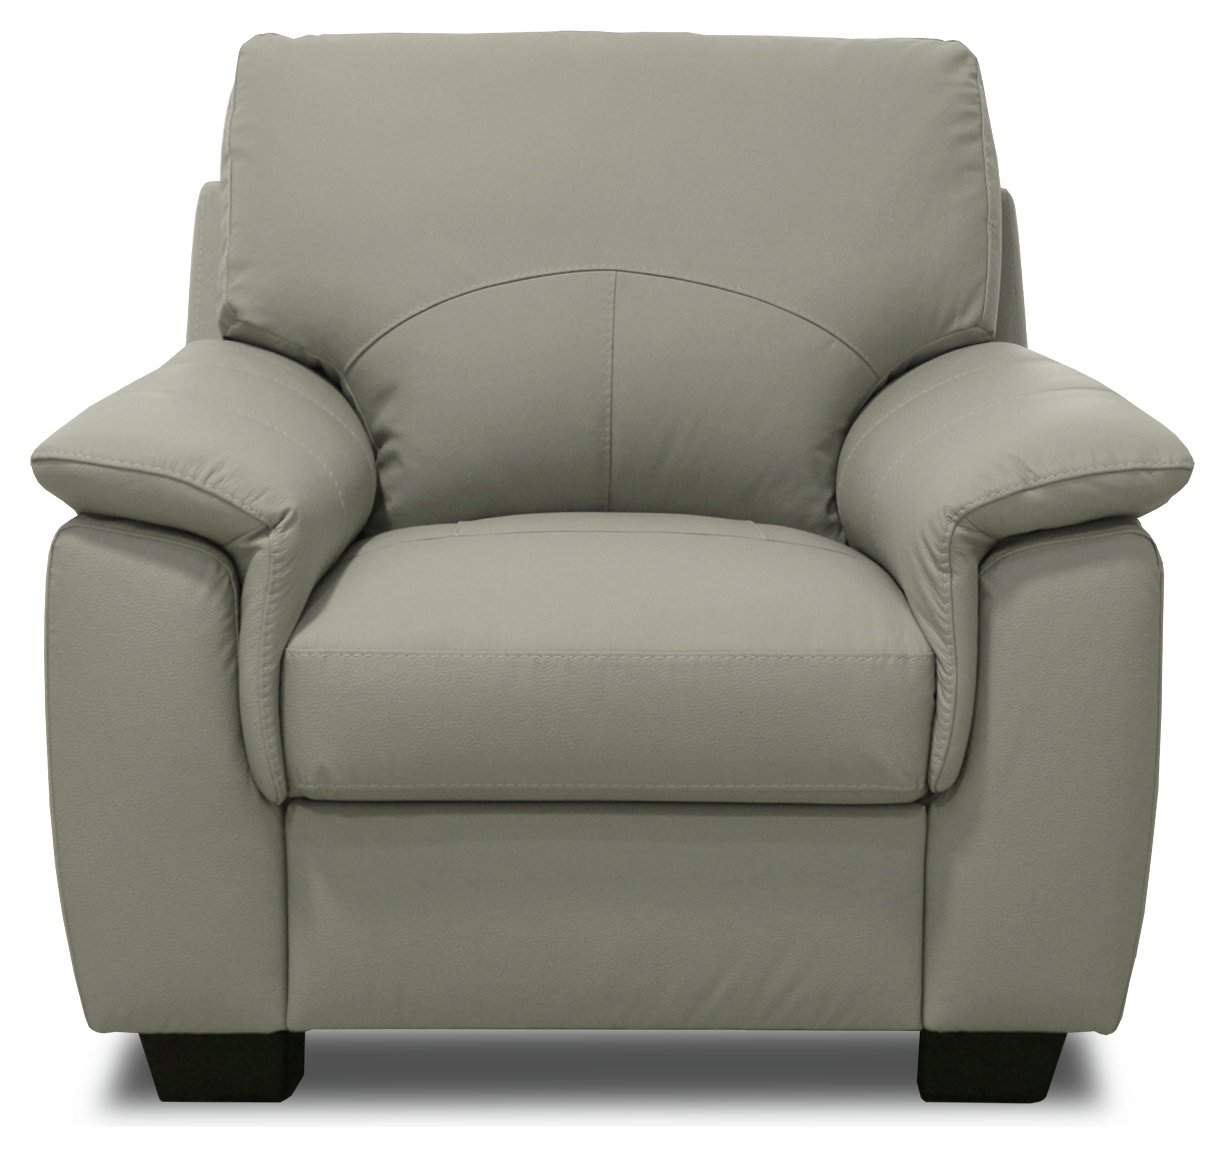 Argos Home Lukah Leather / Leather Effect Chair   Grey